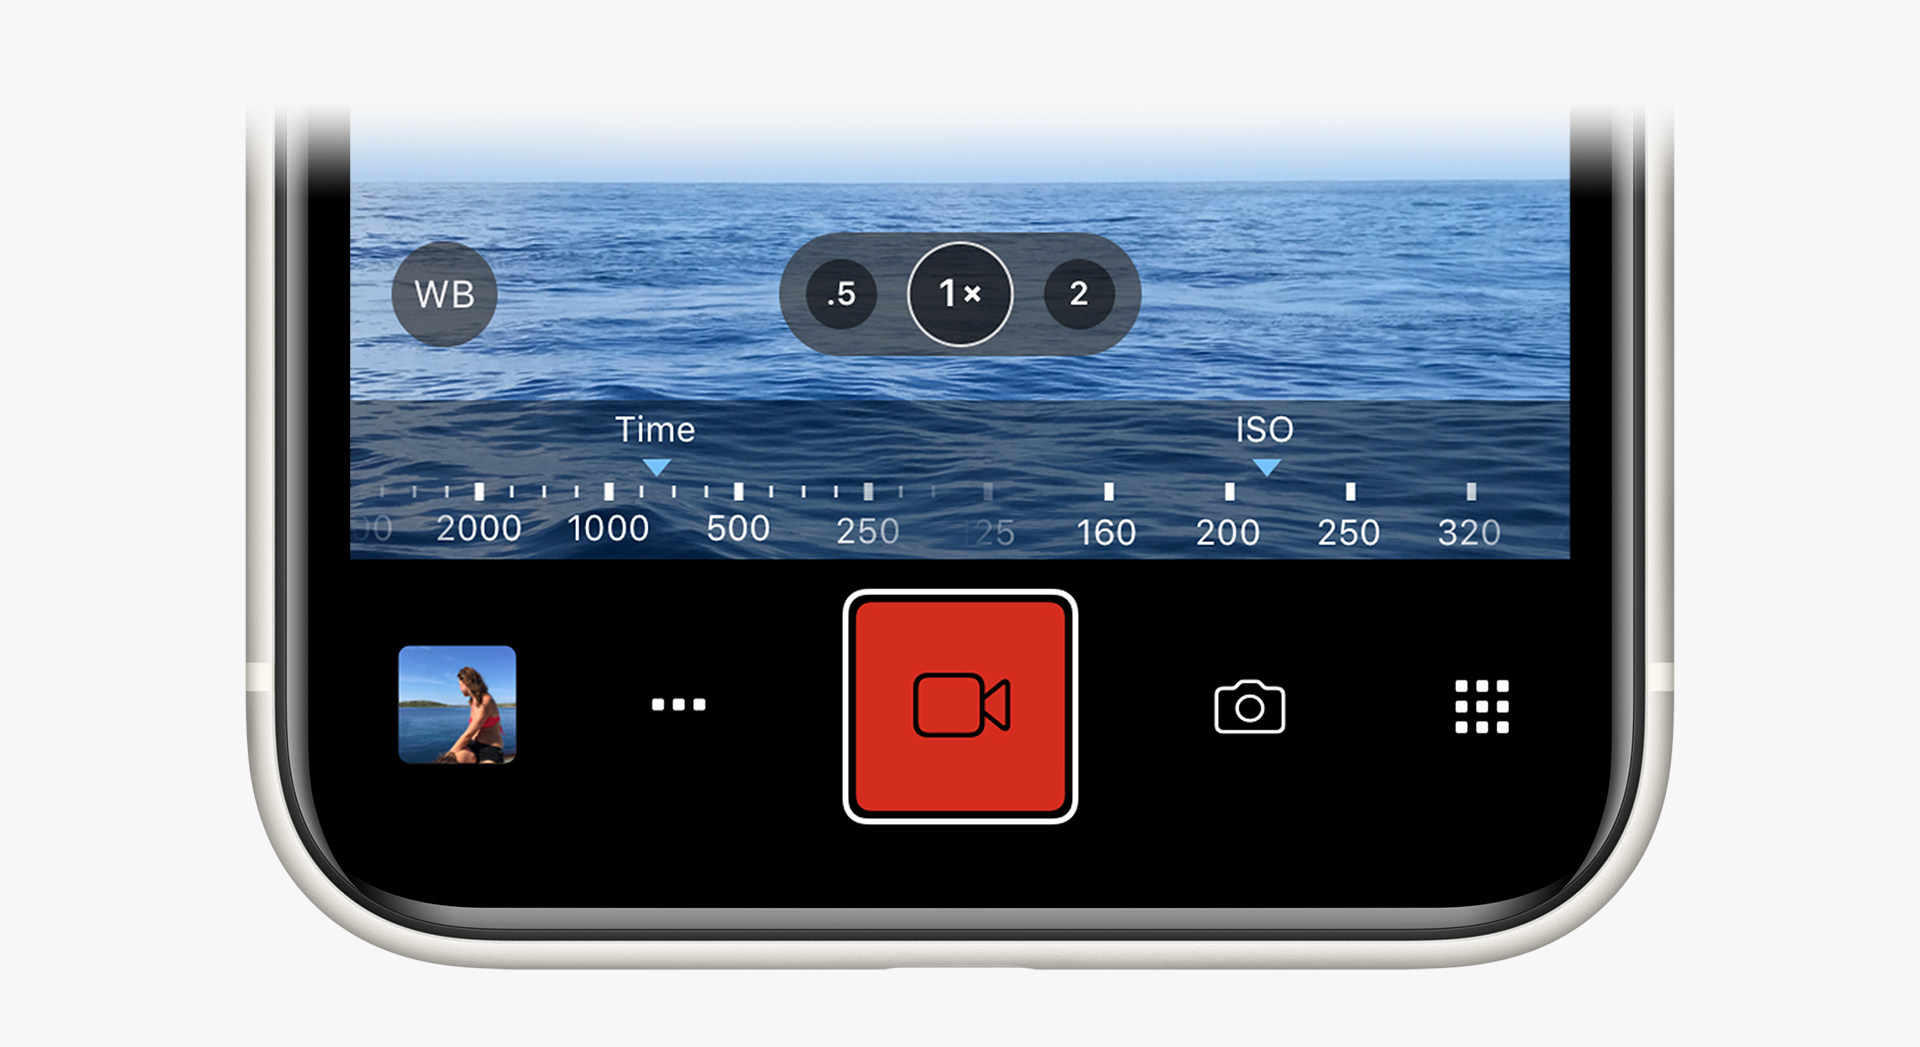 Manual Exposure Controls in ProCamera's Video Mode